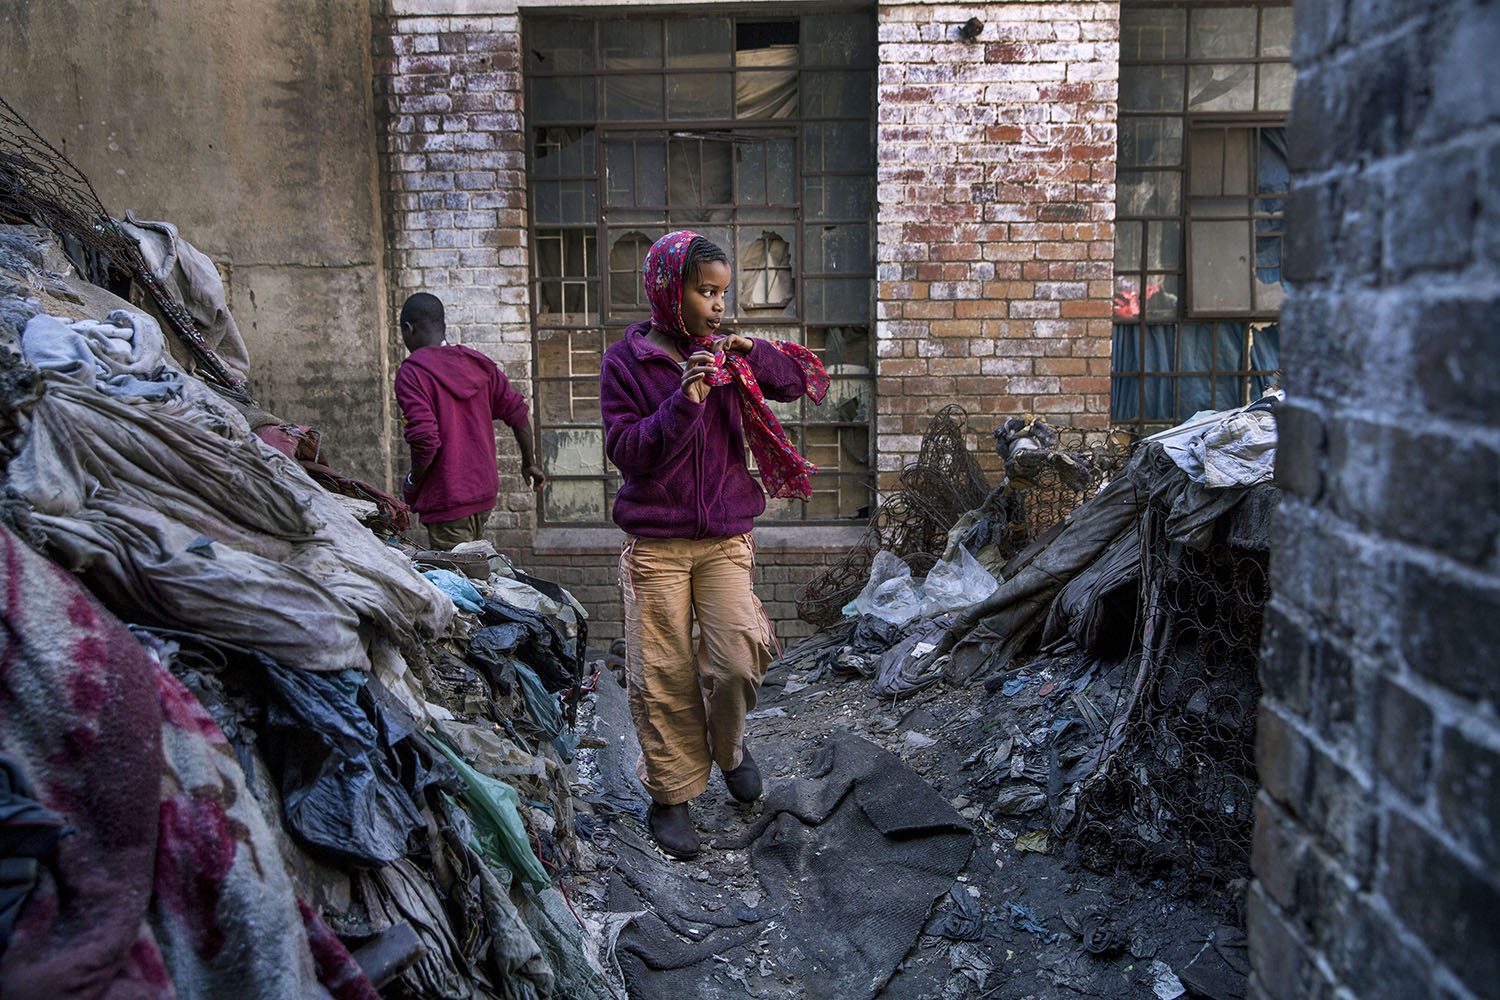 A young girl walks in a rubbish-filled courtyard, July 19, 2015.